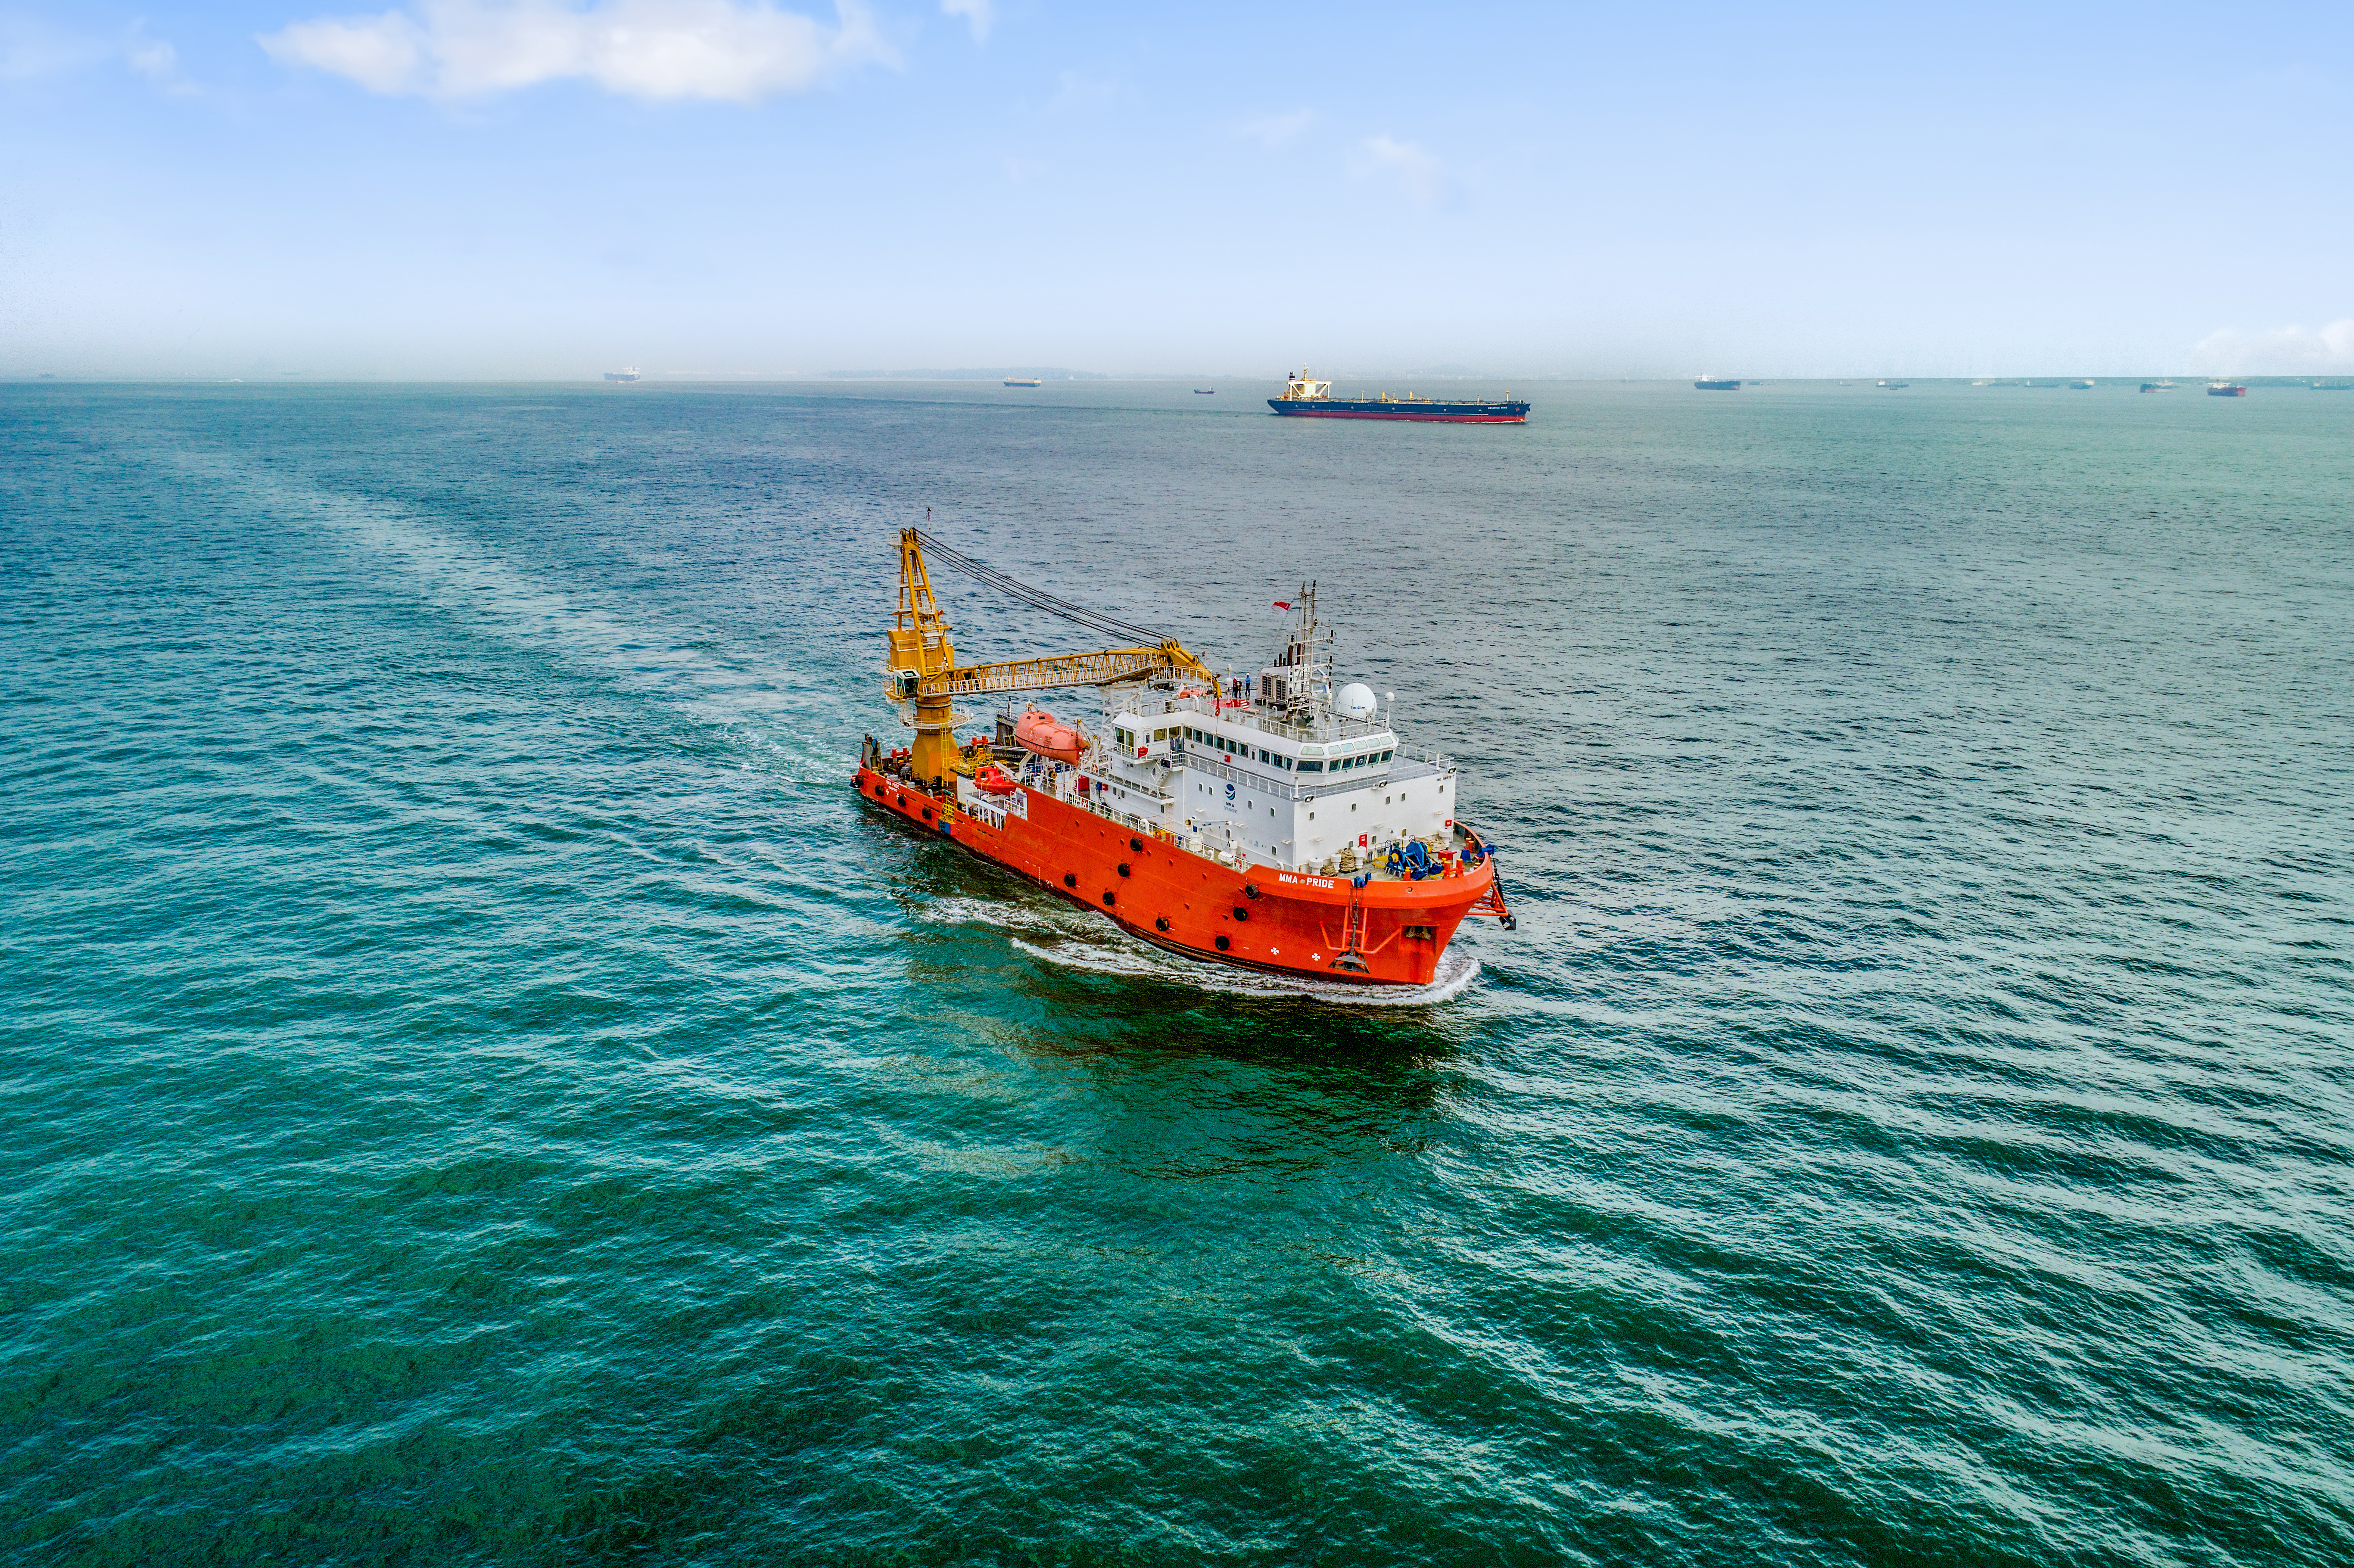 /sites/mmaoffshorecomau//assets/public/image/ProductListing/DJI_0897.jpg